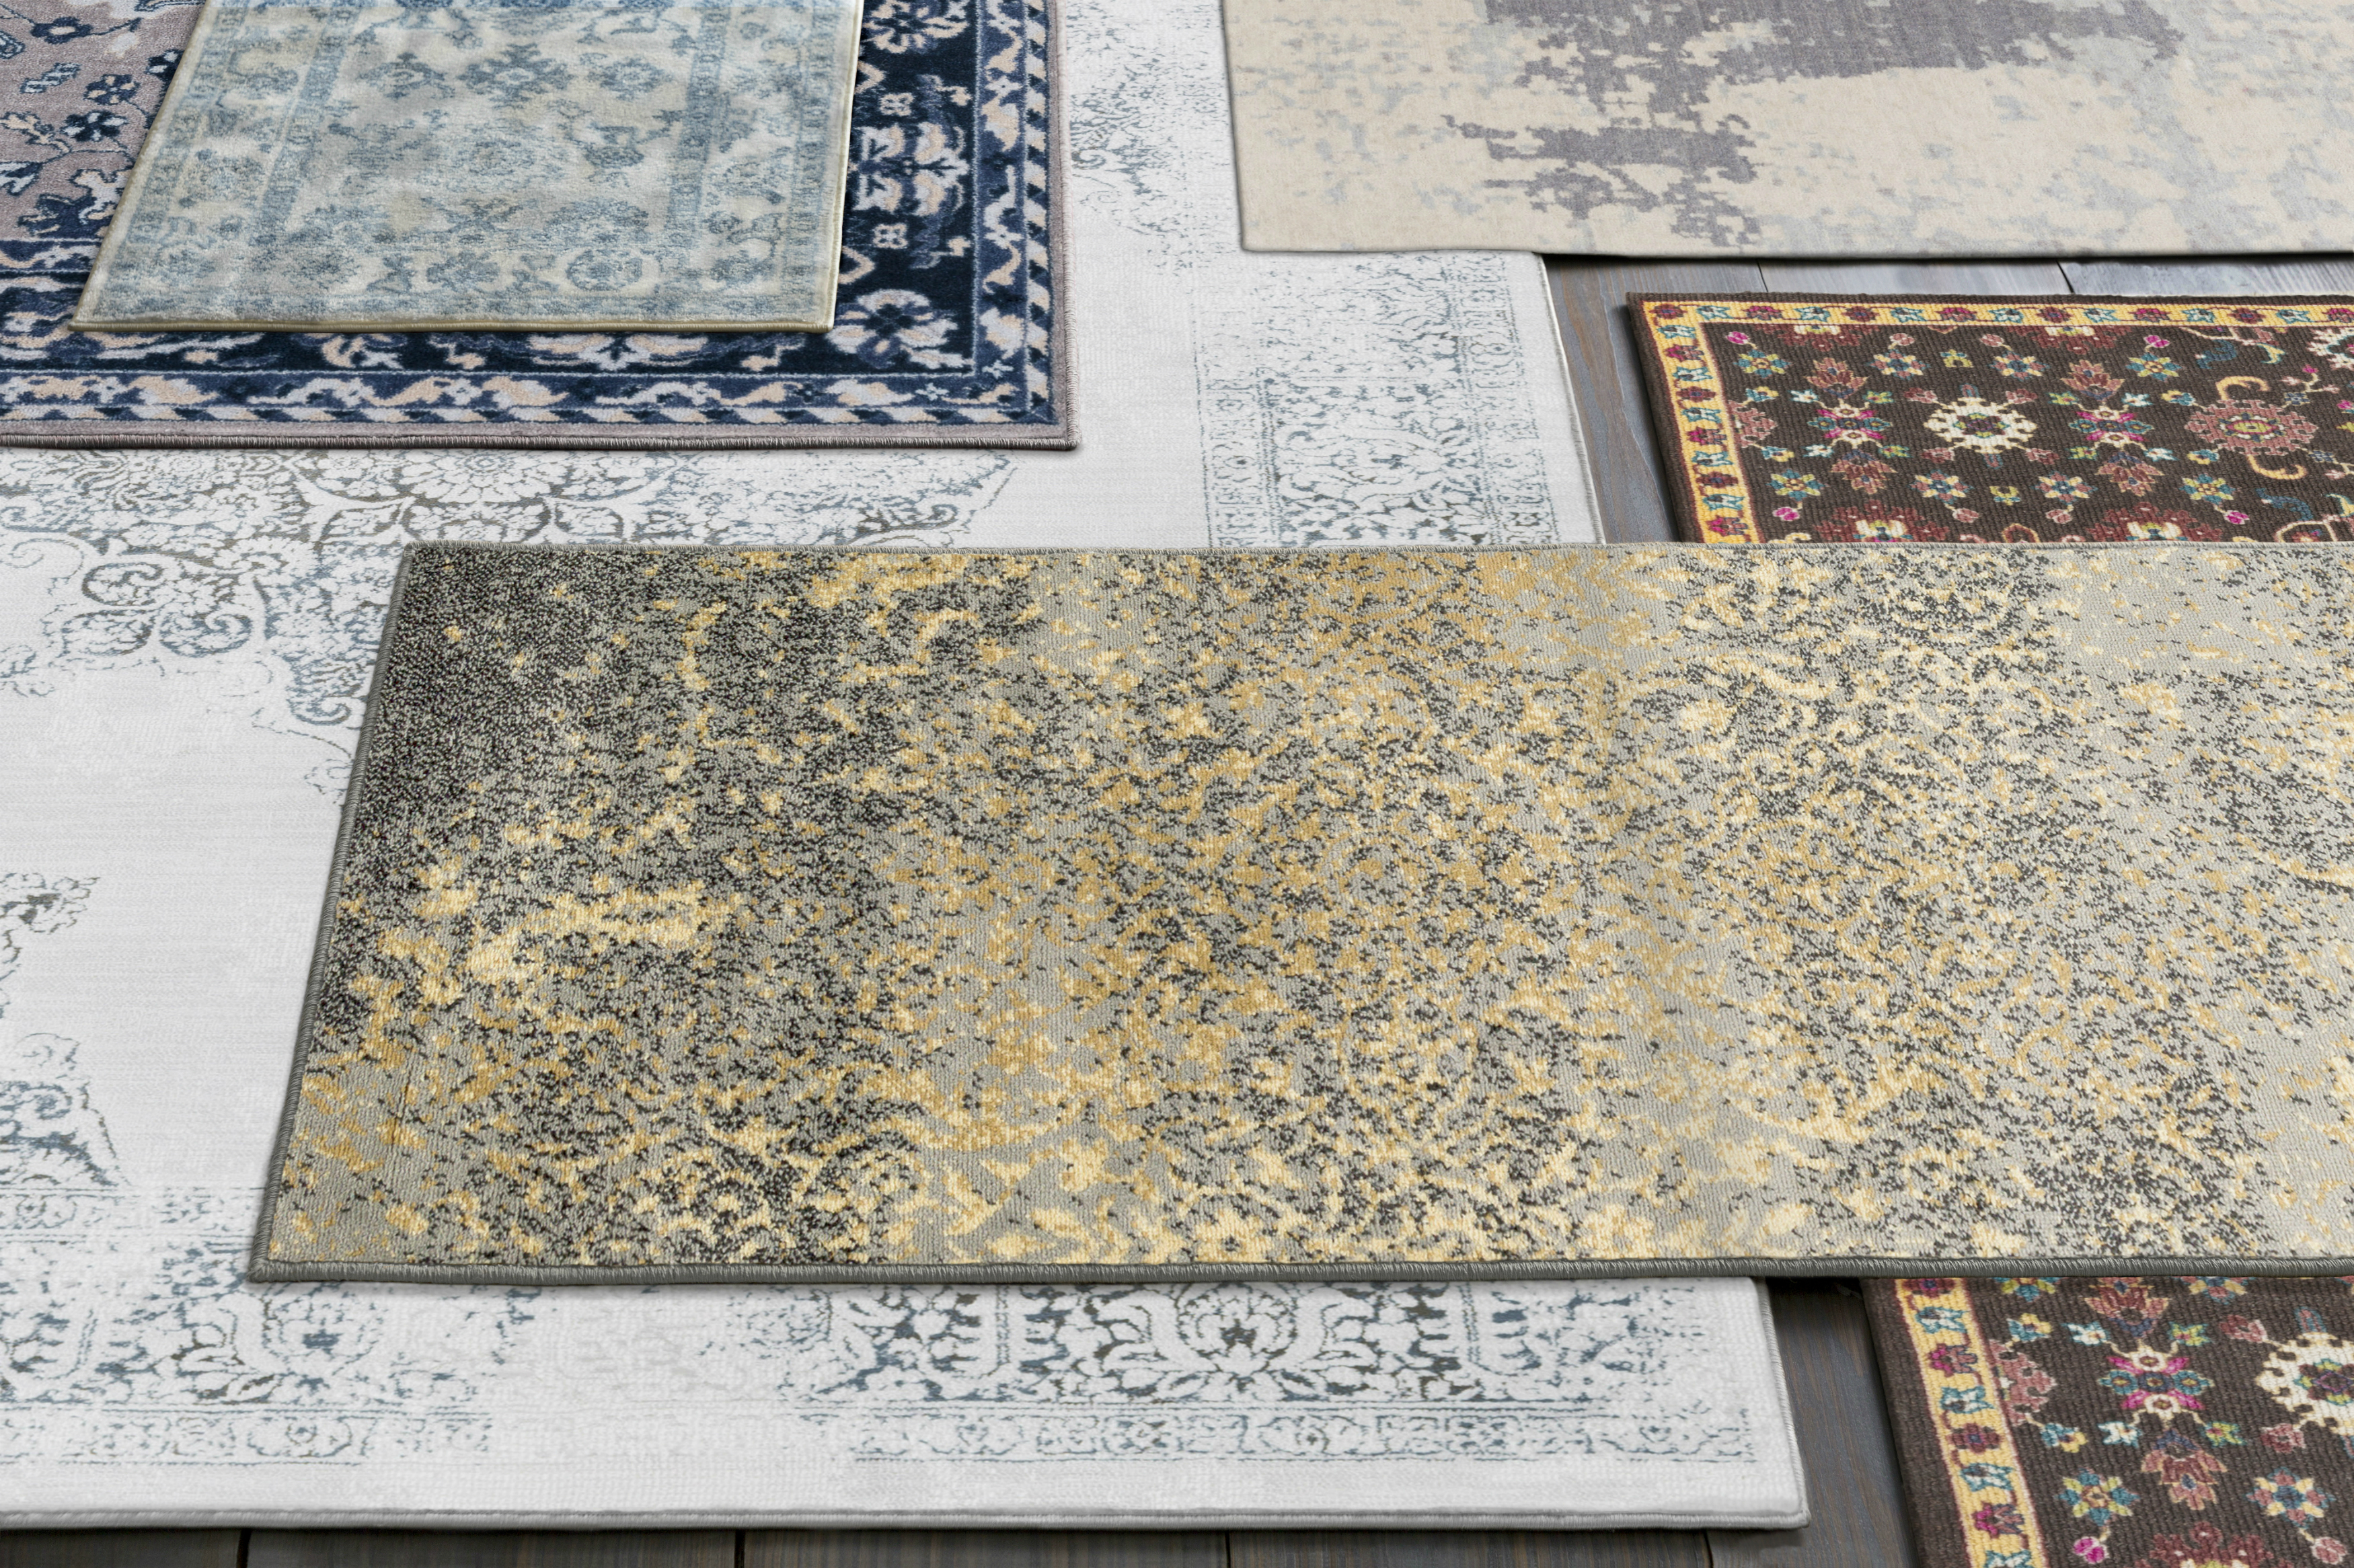 Surya To Introduce Machine Made Rugs With Handcrafted Look And Feel At Summer Markets